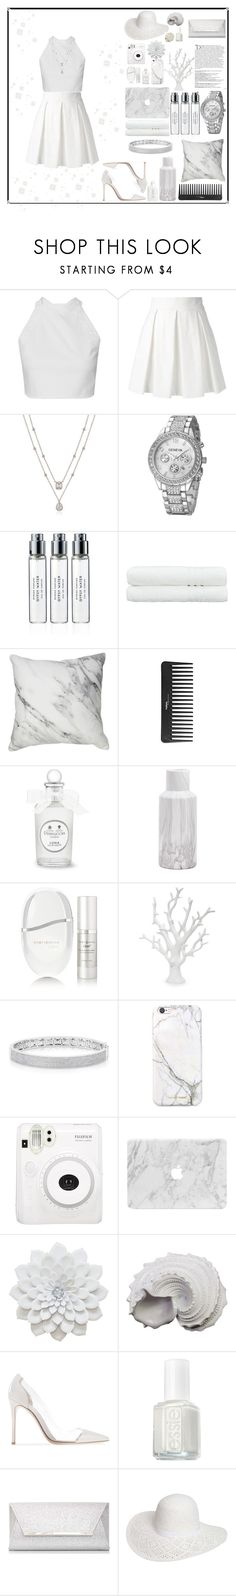 """A White Lie"" by amber-mistry ❤ liked on Polyvore featuring Boutique Moschino, Byredo, Linum Home Textiles, Sephora Collection, Clarisonic, Anne Sisteron, russell+hazel, Balmain, Fuji and Urban Trends Collection"